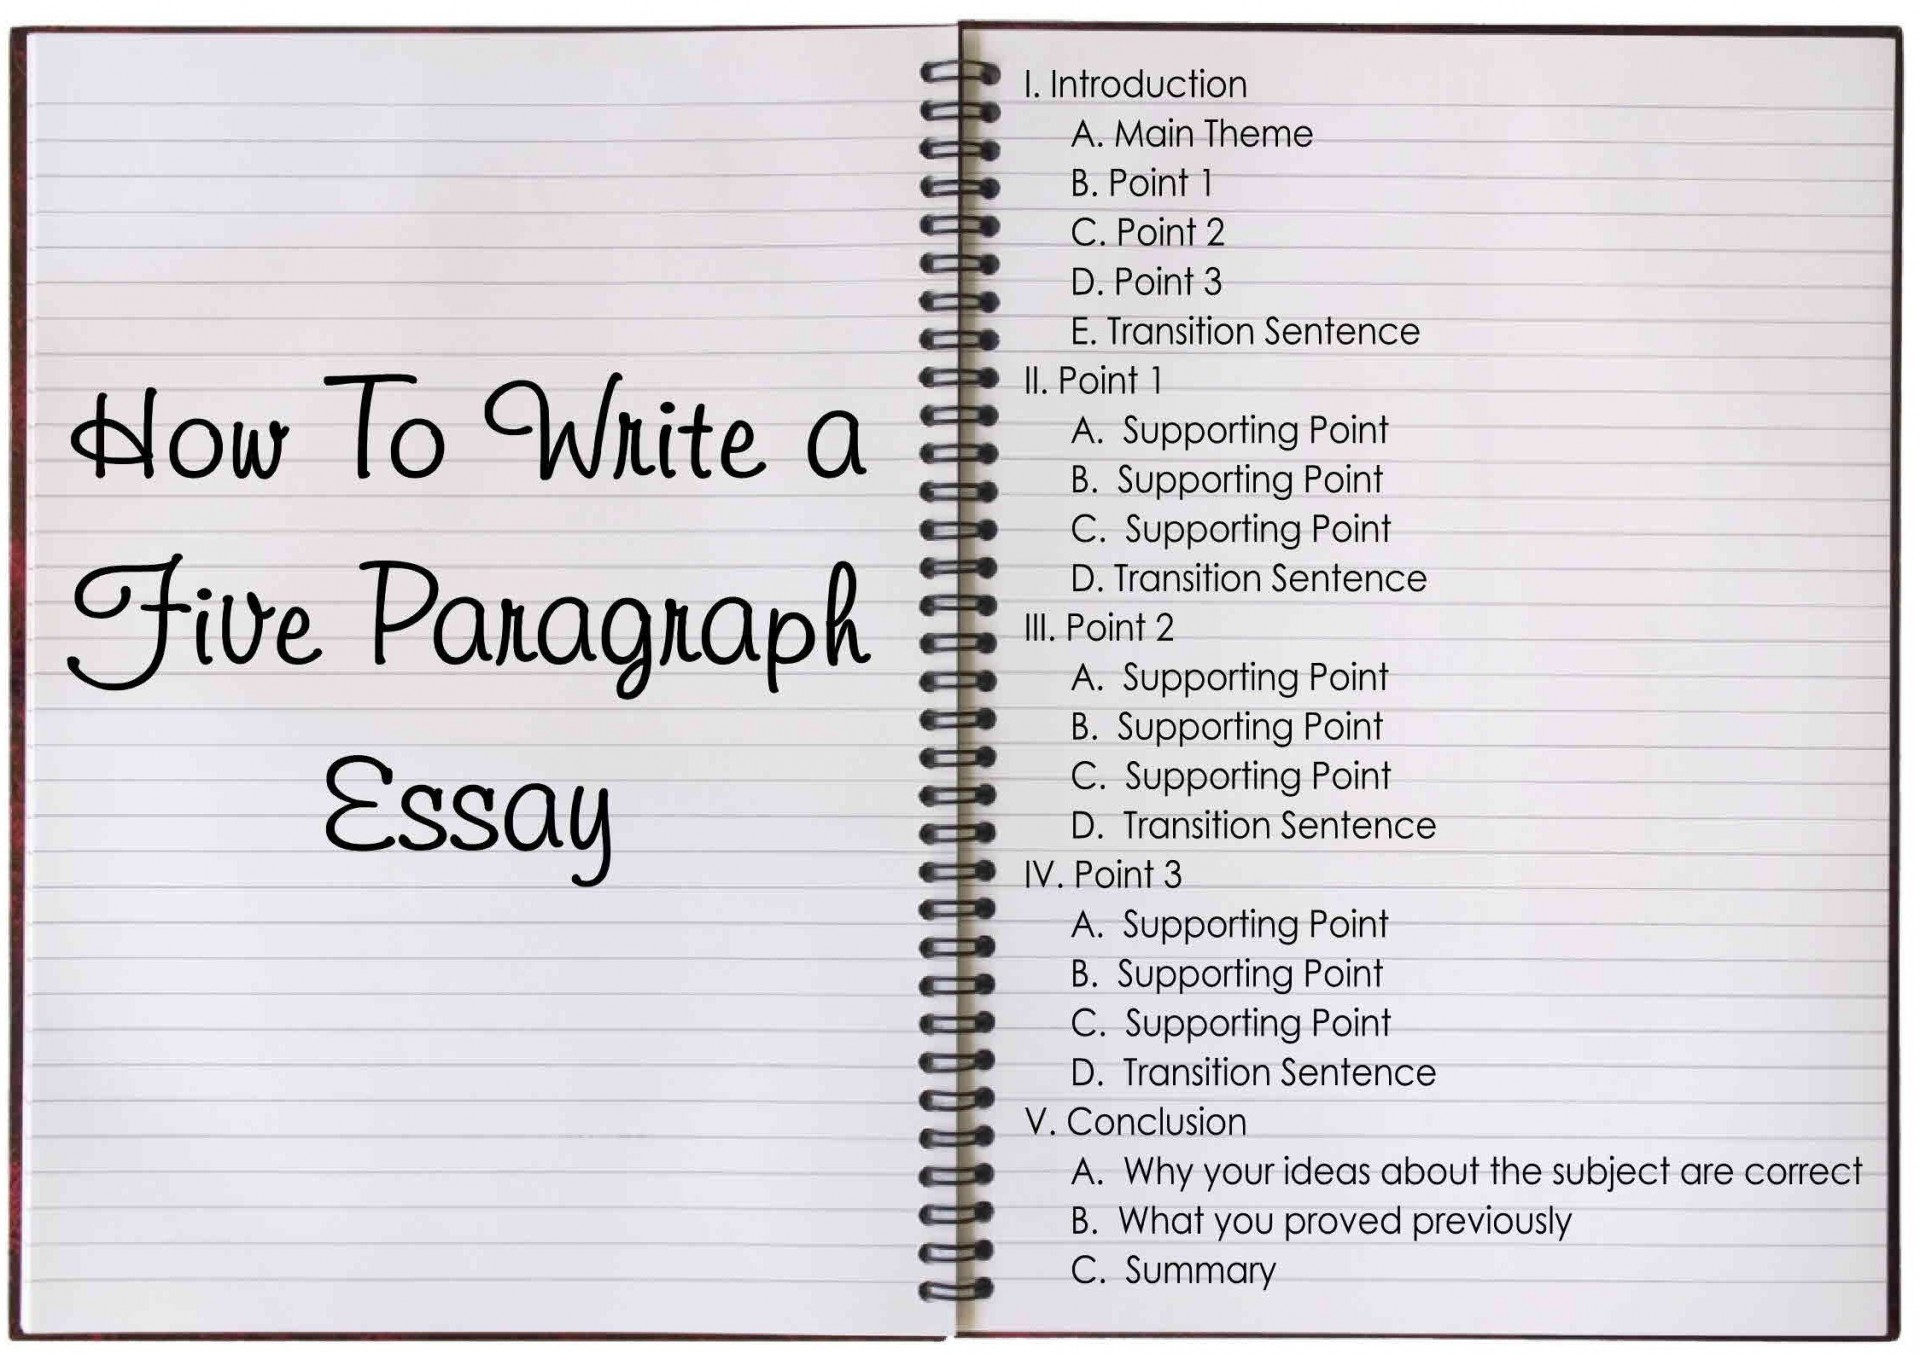 023 Paragraph Essay Topics Example Best 5 7th Grade For Elementary Students Five List 1920